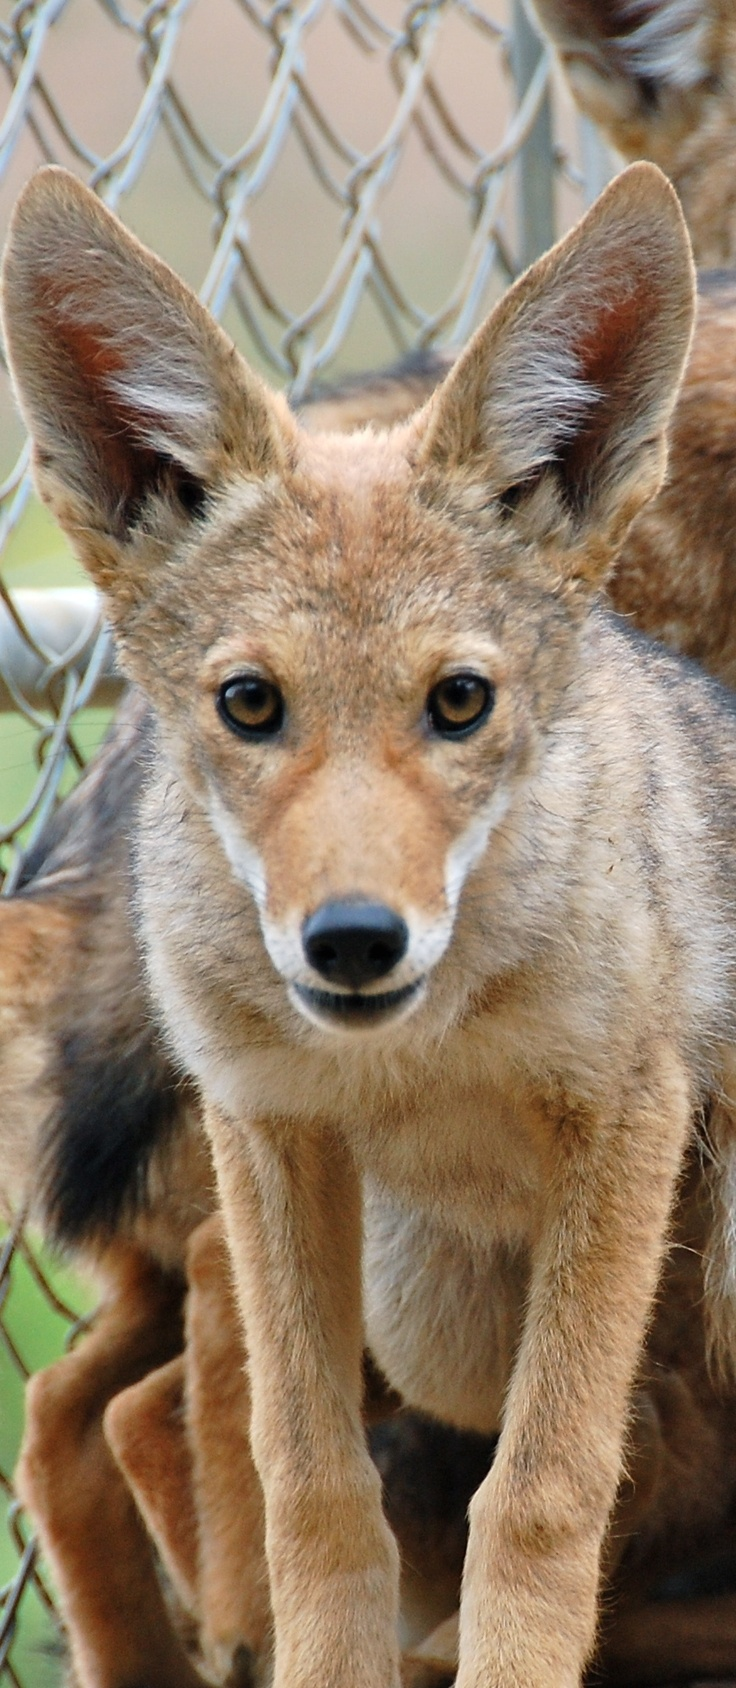 493 Best Coyotes Images On Pinterest